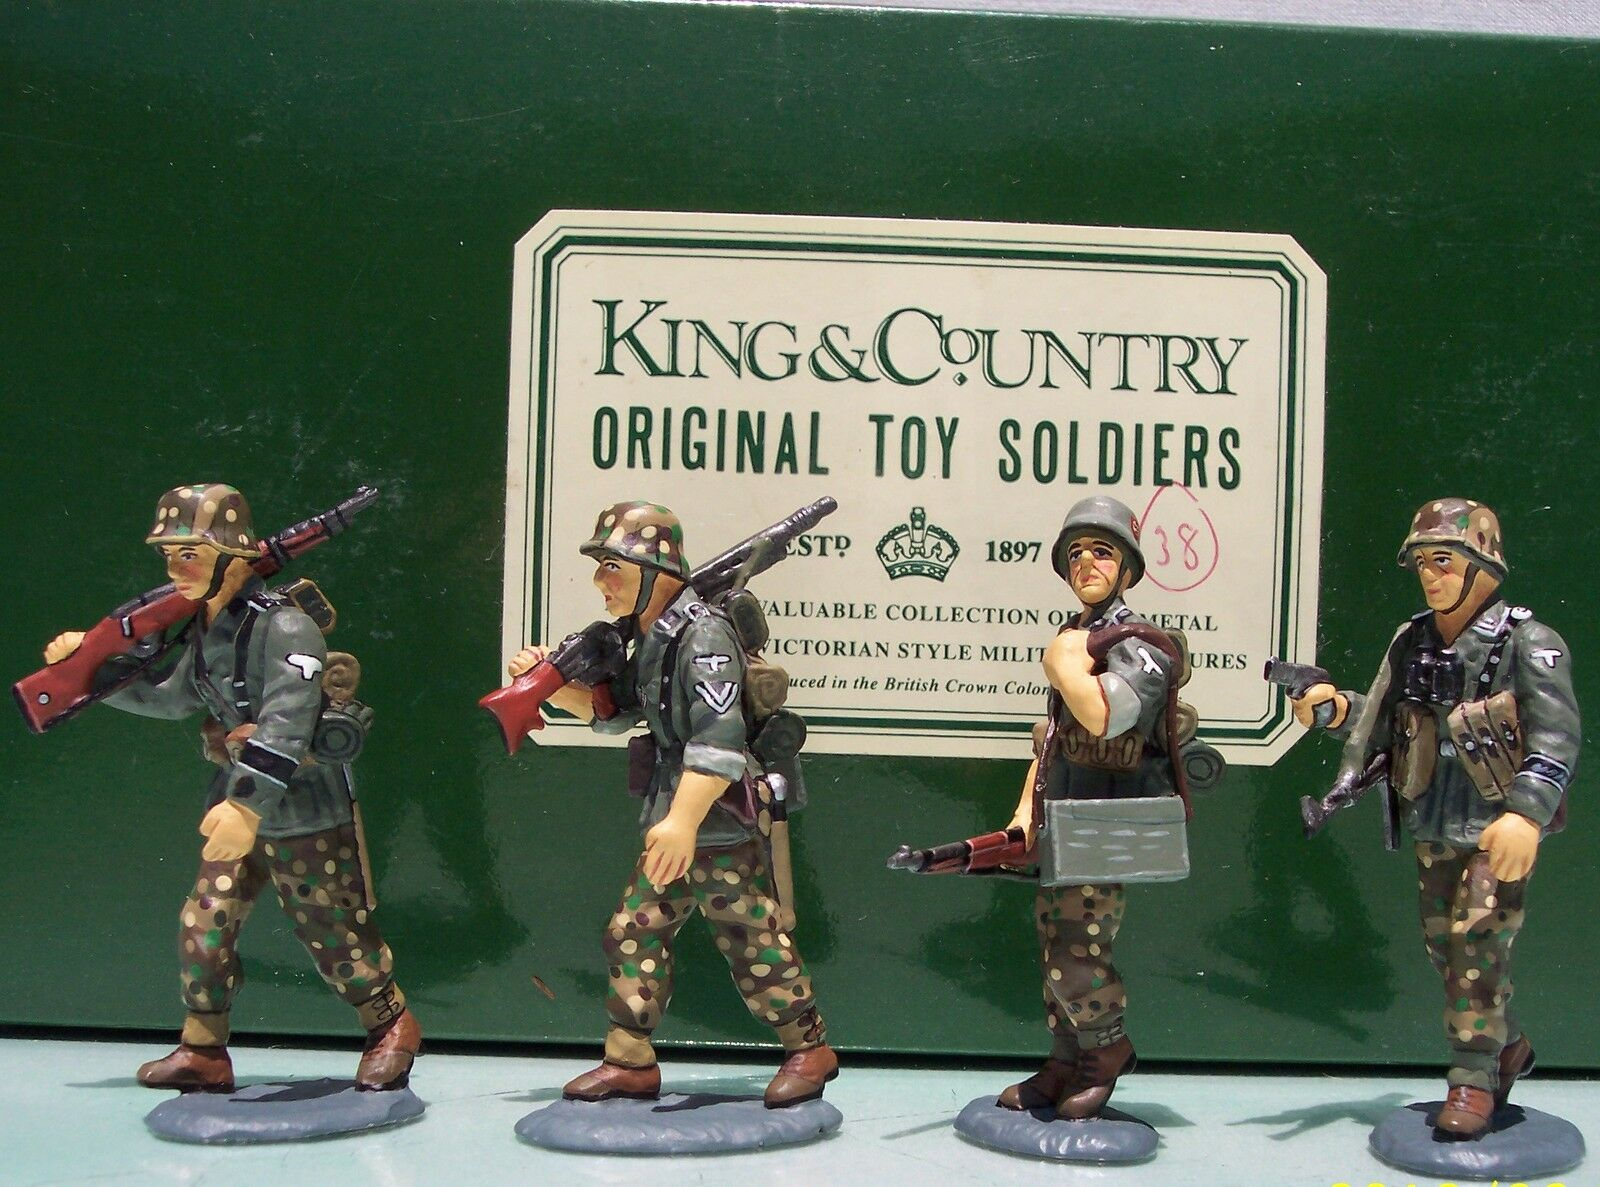 KING & COUNTRY WW2 GERMAN ARMY WS008 OFFICER & 3 ADVANCING PANZER GRENADIERS MIB